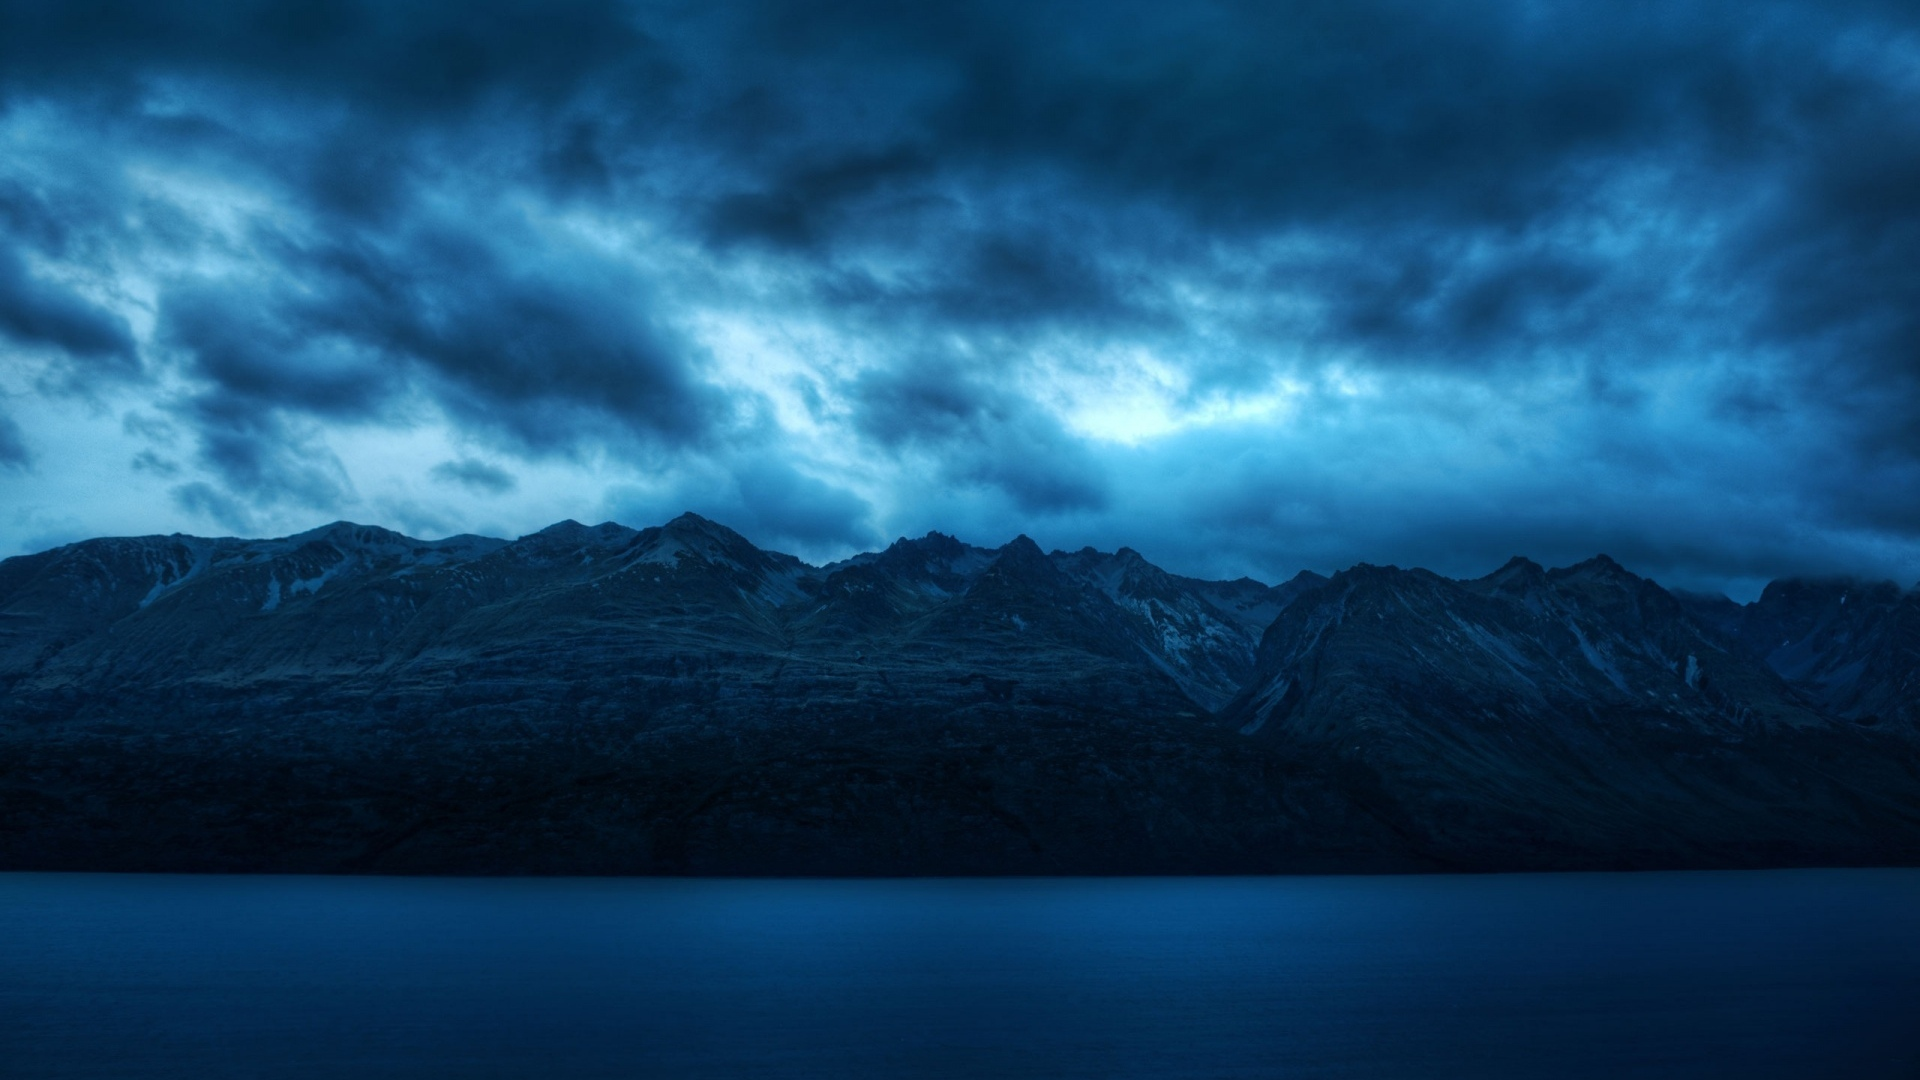 download wallpaper 1920x1080 water, blue, mountains, scenery, clouds